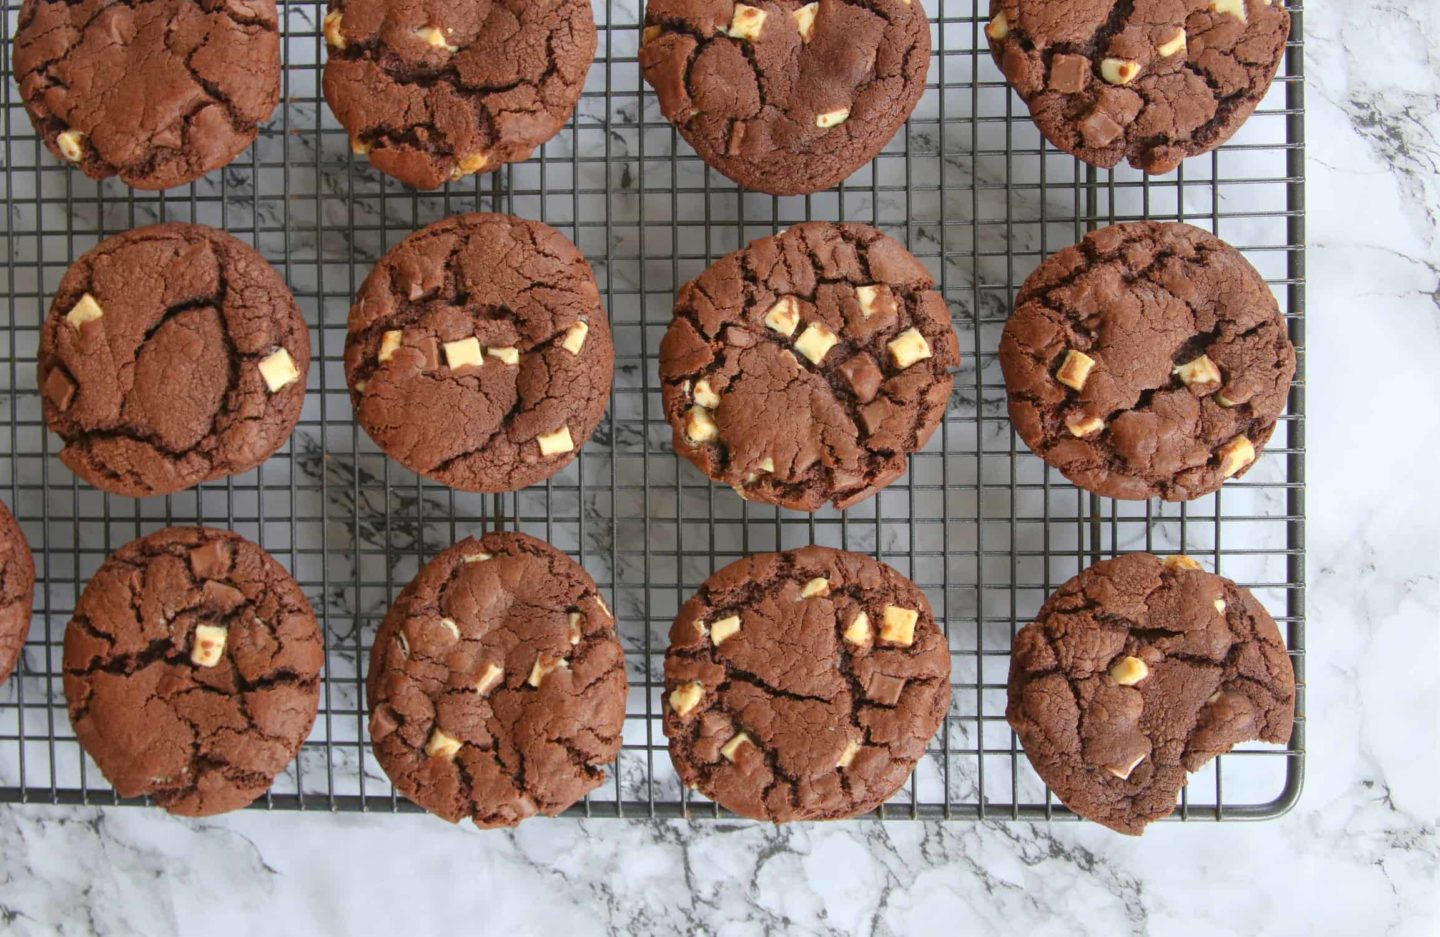 Gluten-free Cookie Recipes - 22 of the BEST recipes you need to try!